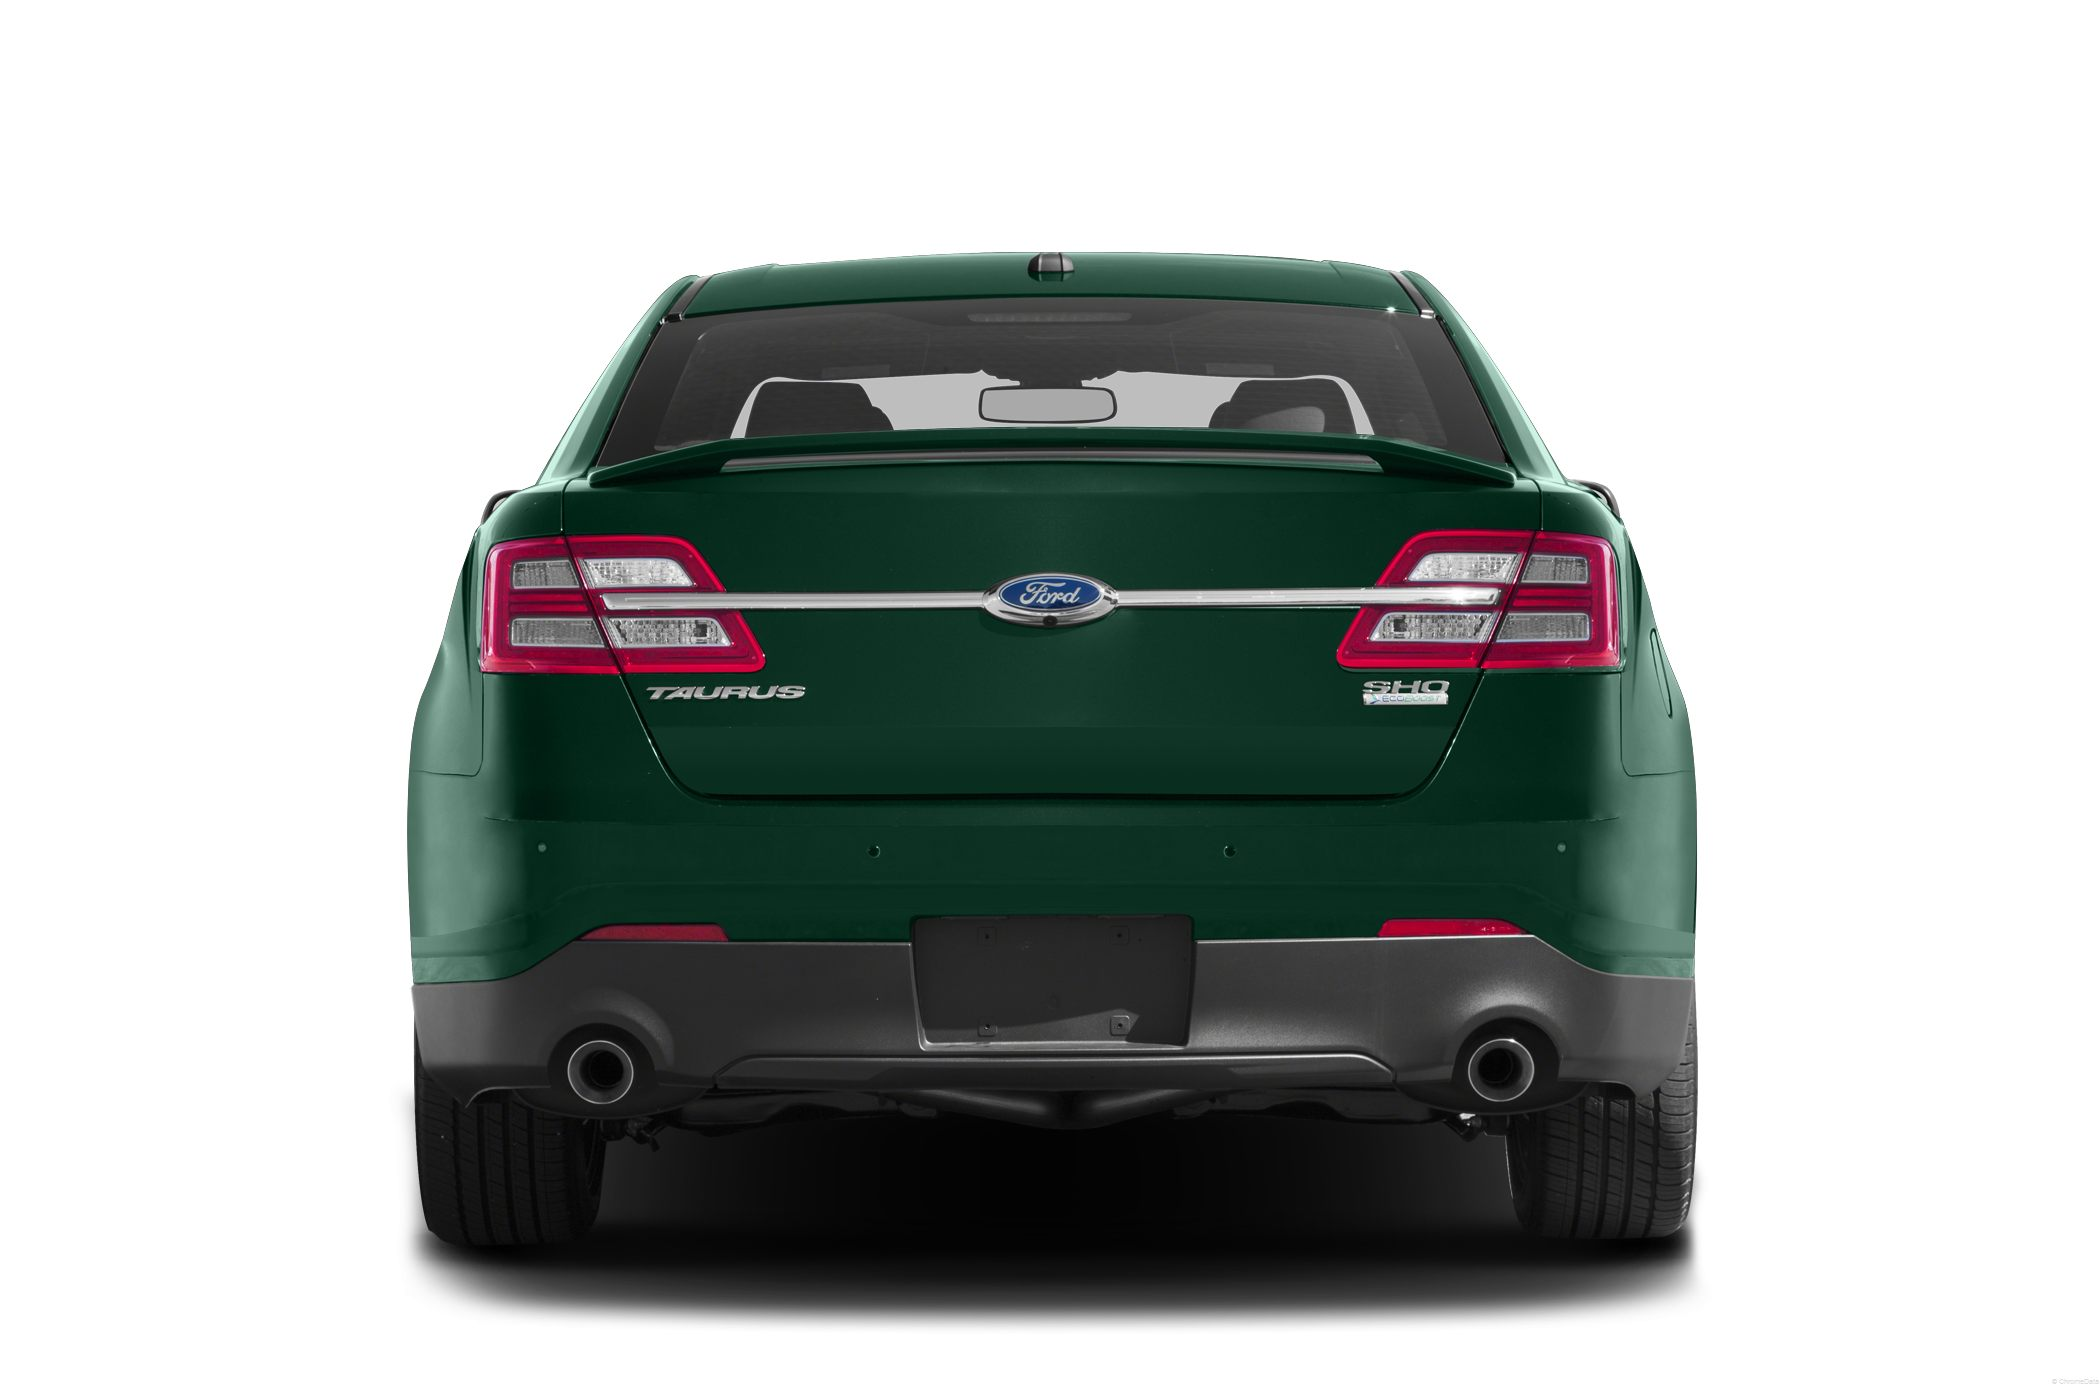 2014 ford taurus sho gallery 524251 top speed. Black Bedroom Furniture Sets. Home Design Ideas